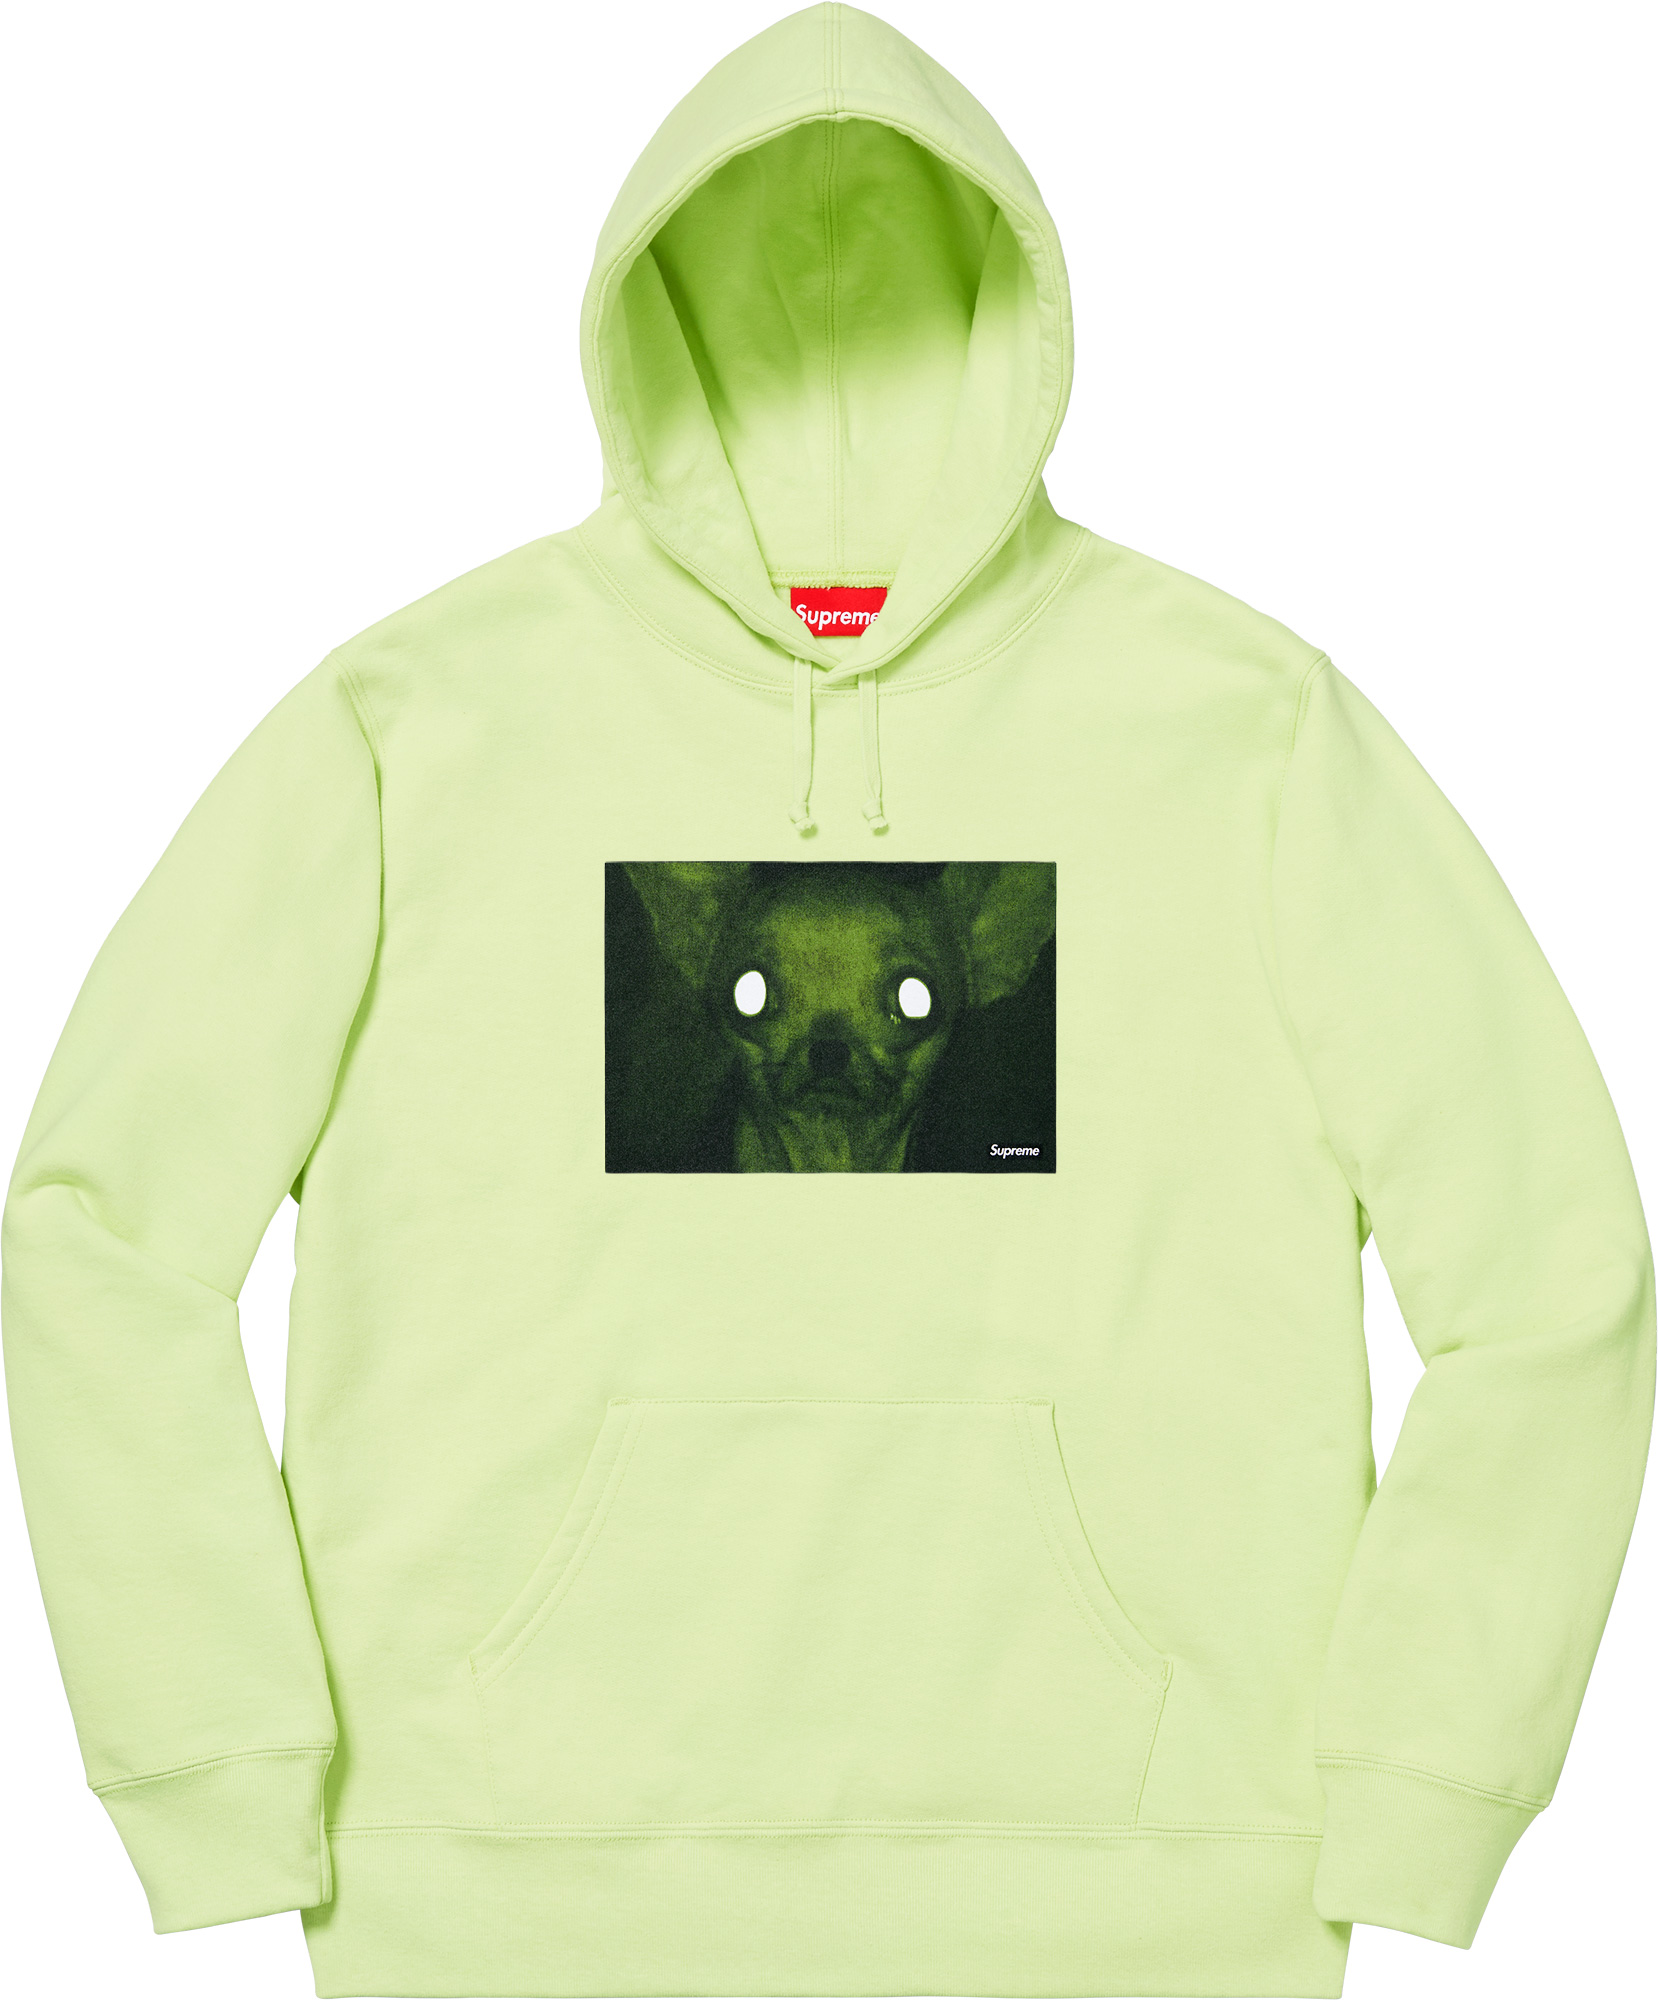 Details Supreme Chris Cunningham Chihuahua Hooded Sweatshirt